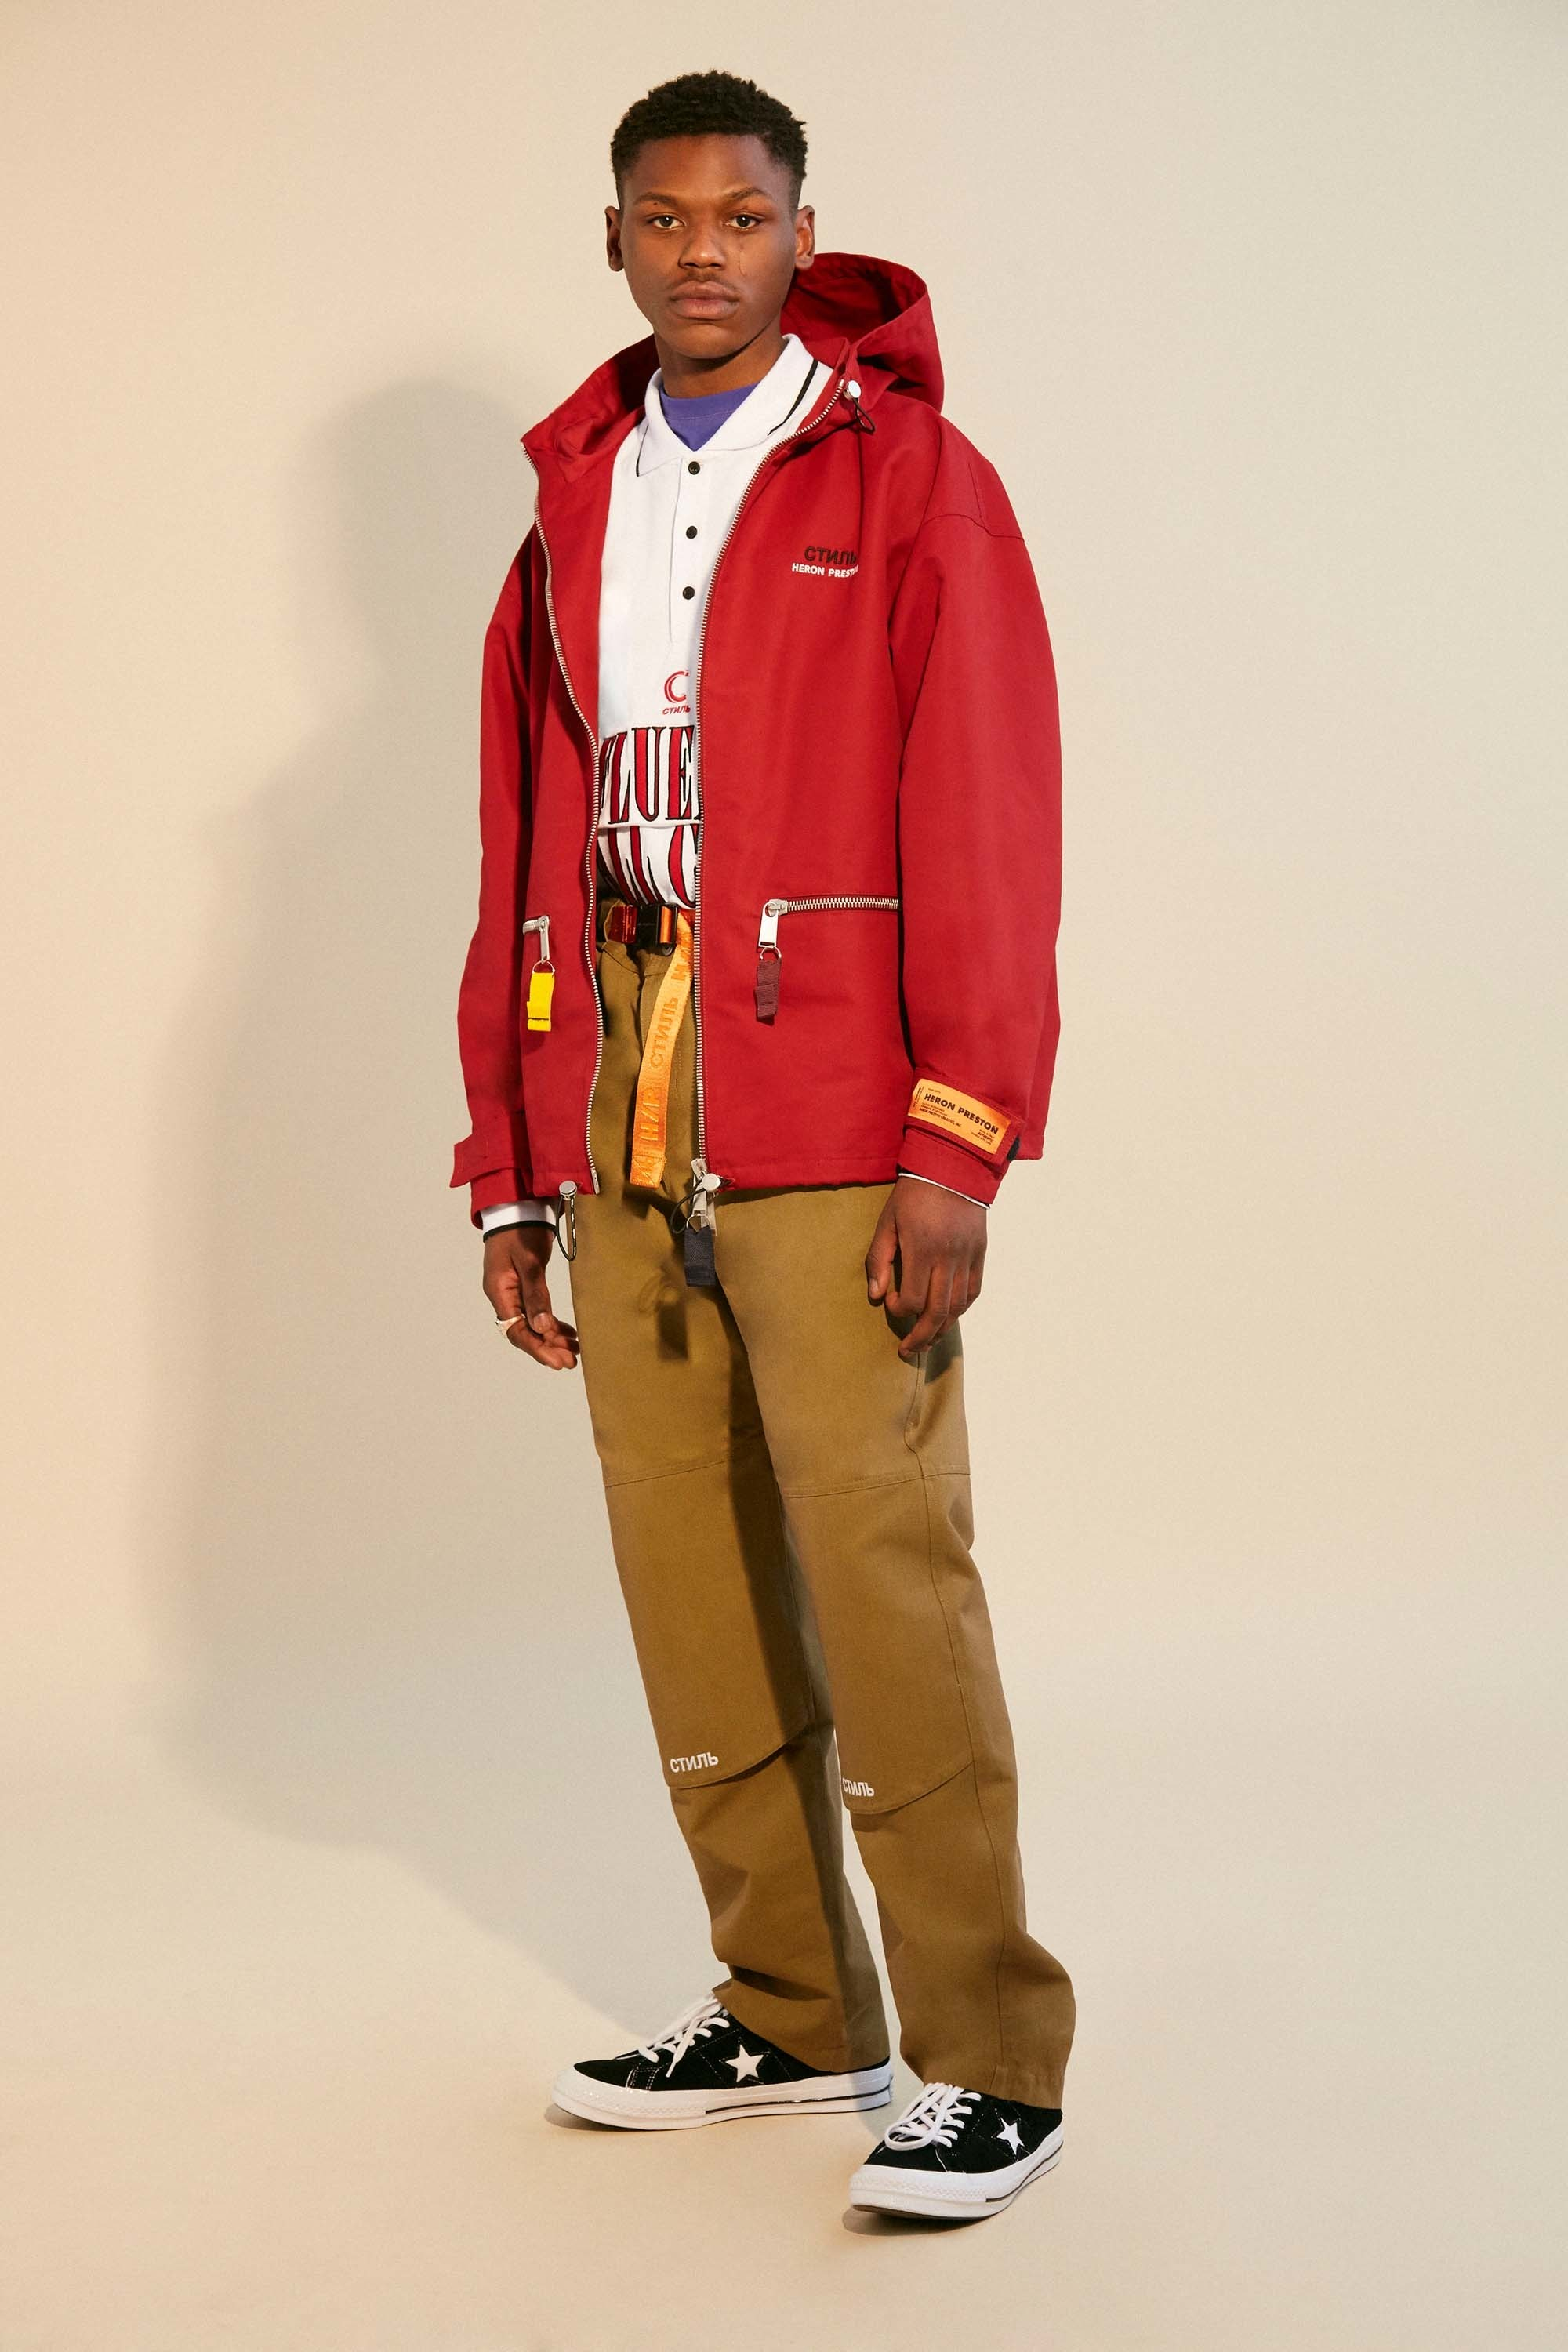 23-heron-preston-fw18-lookbook.jpg